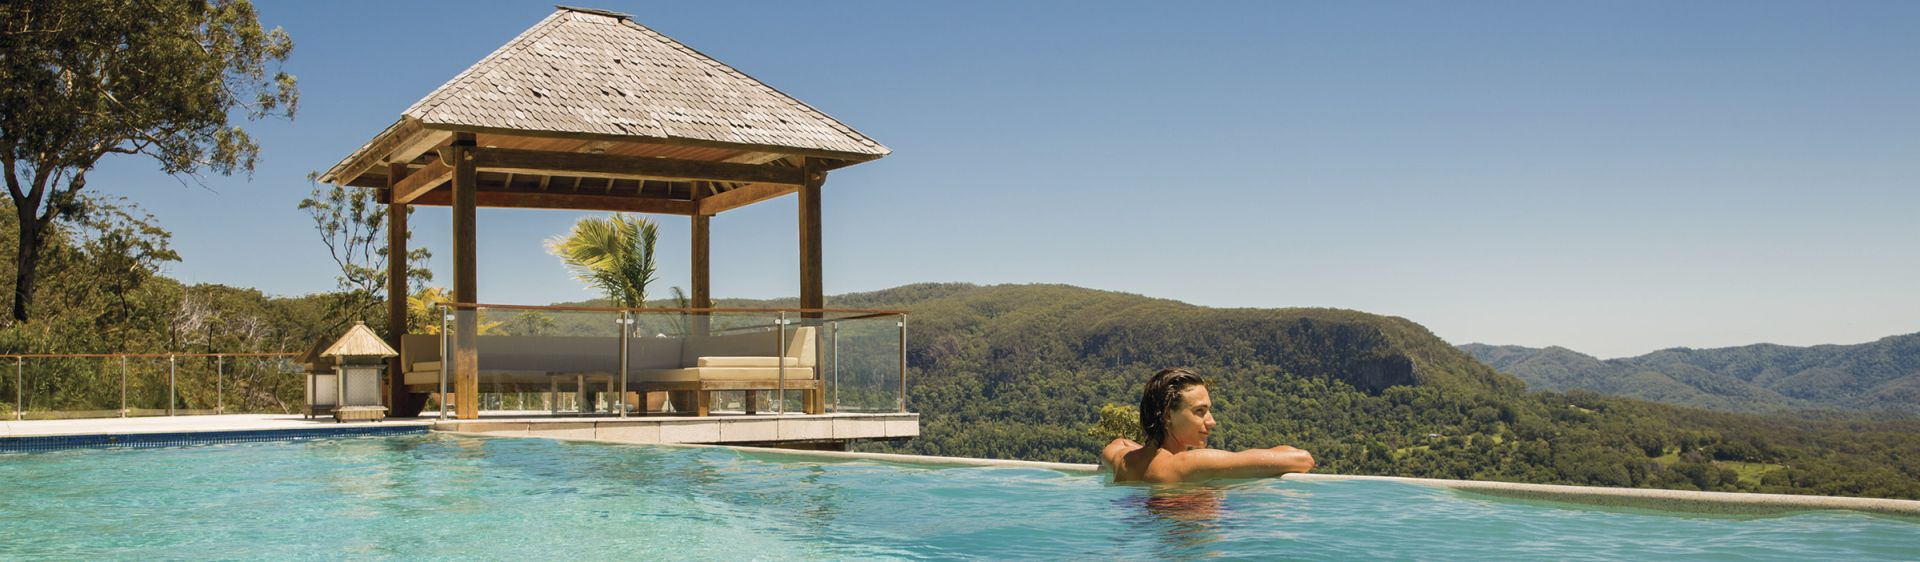 Koonyum Range Retreat Pool - Mullumbimby